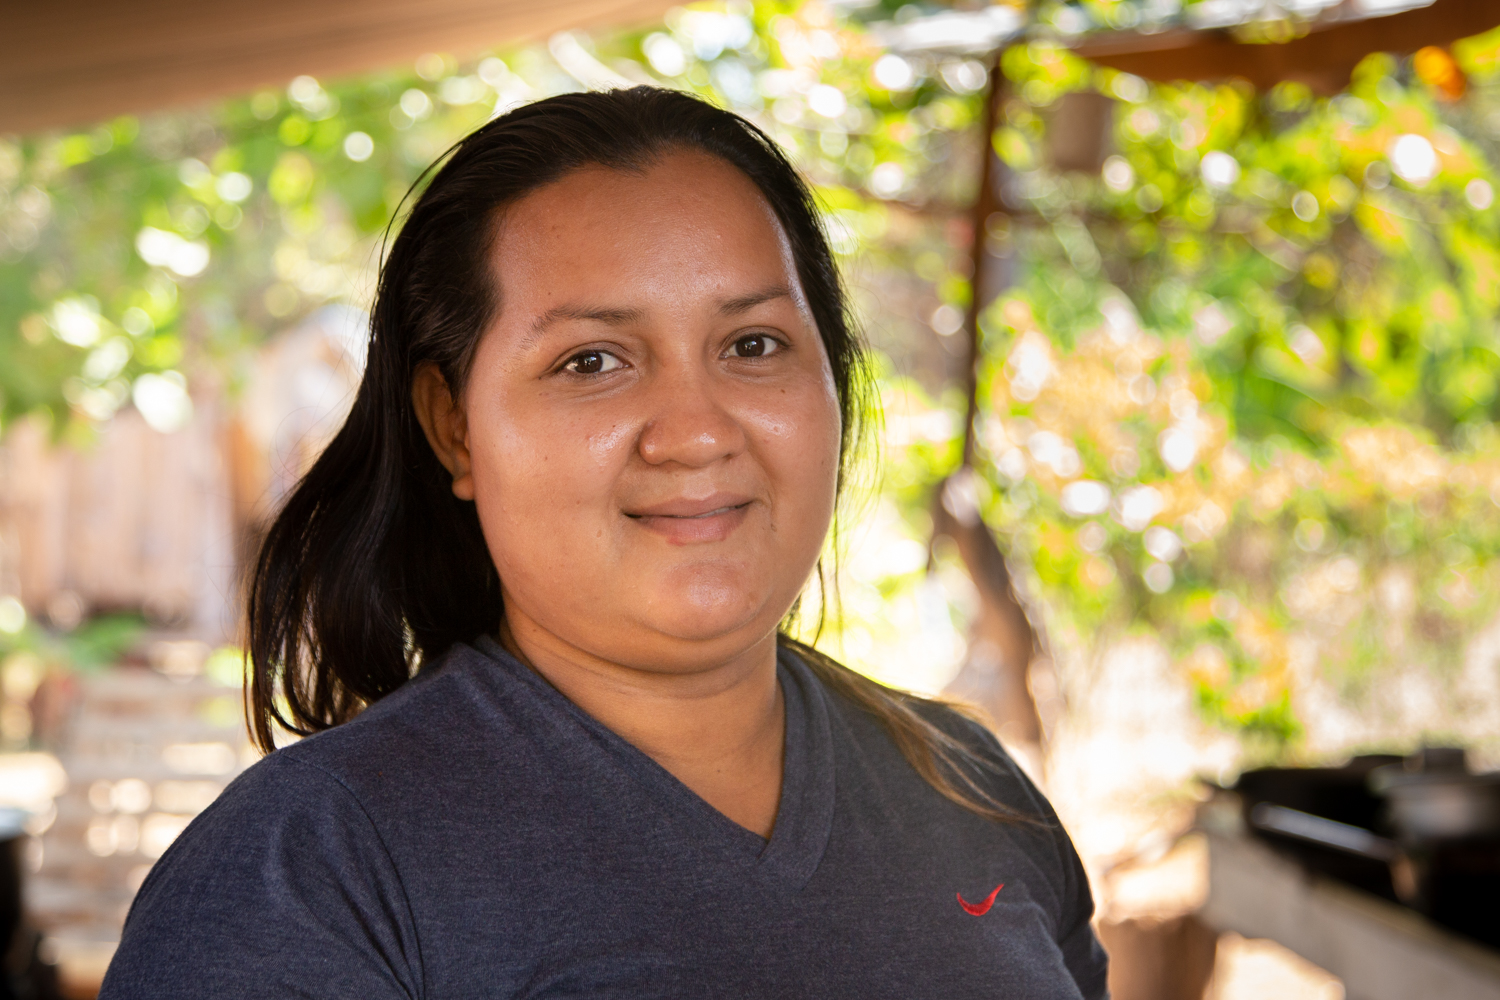 LEIYDI ROJAS (CR) | Leiydi is from Punta Morales, Costa Rica. She has assisted SAILCARGO INC. through helping cook delicious warm meals for the crew as part of the Women's Association, as well as in repairing some of the canvas roofing tarps that shelter the build of Ceiba. Her wish is to become proficient in English, so that she can get better jobs in places like Monteverde and improve her life situation.   Leiydi es de Punta Morales, Costa Rica. Ella ha ayudado a SAILCARGO INC. ayudando a cocinar deliciosas comidas calientes para el equipo como parte de la Asociación de Mujeres, así como a reparar algunas de las lonas de techo que albergan la estructura de Ceiba. Su deseo es dominar el inglés, para poder obtener mejores empleos en lugares como Monteverde y mejorar su situación en la vida.